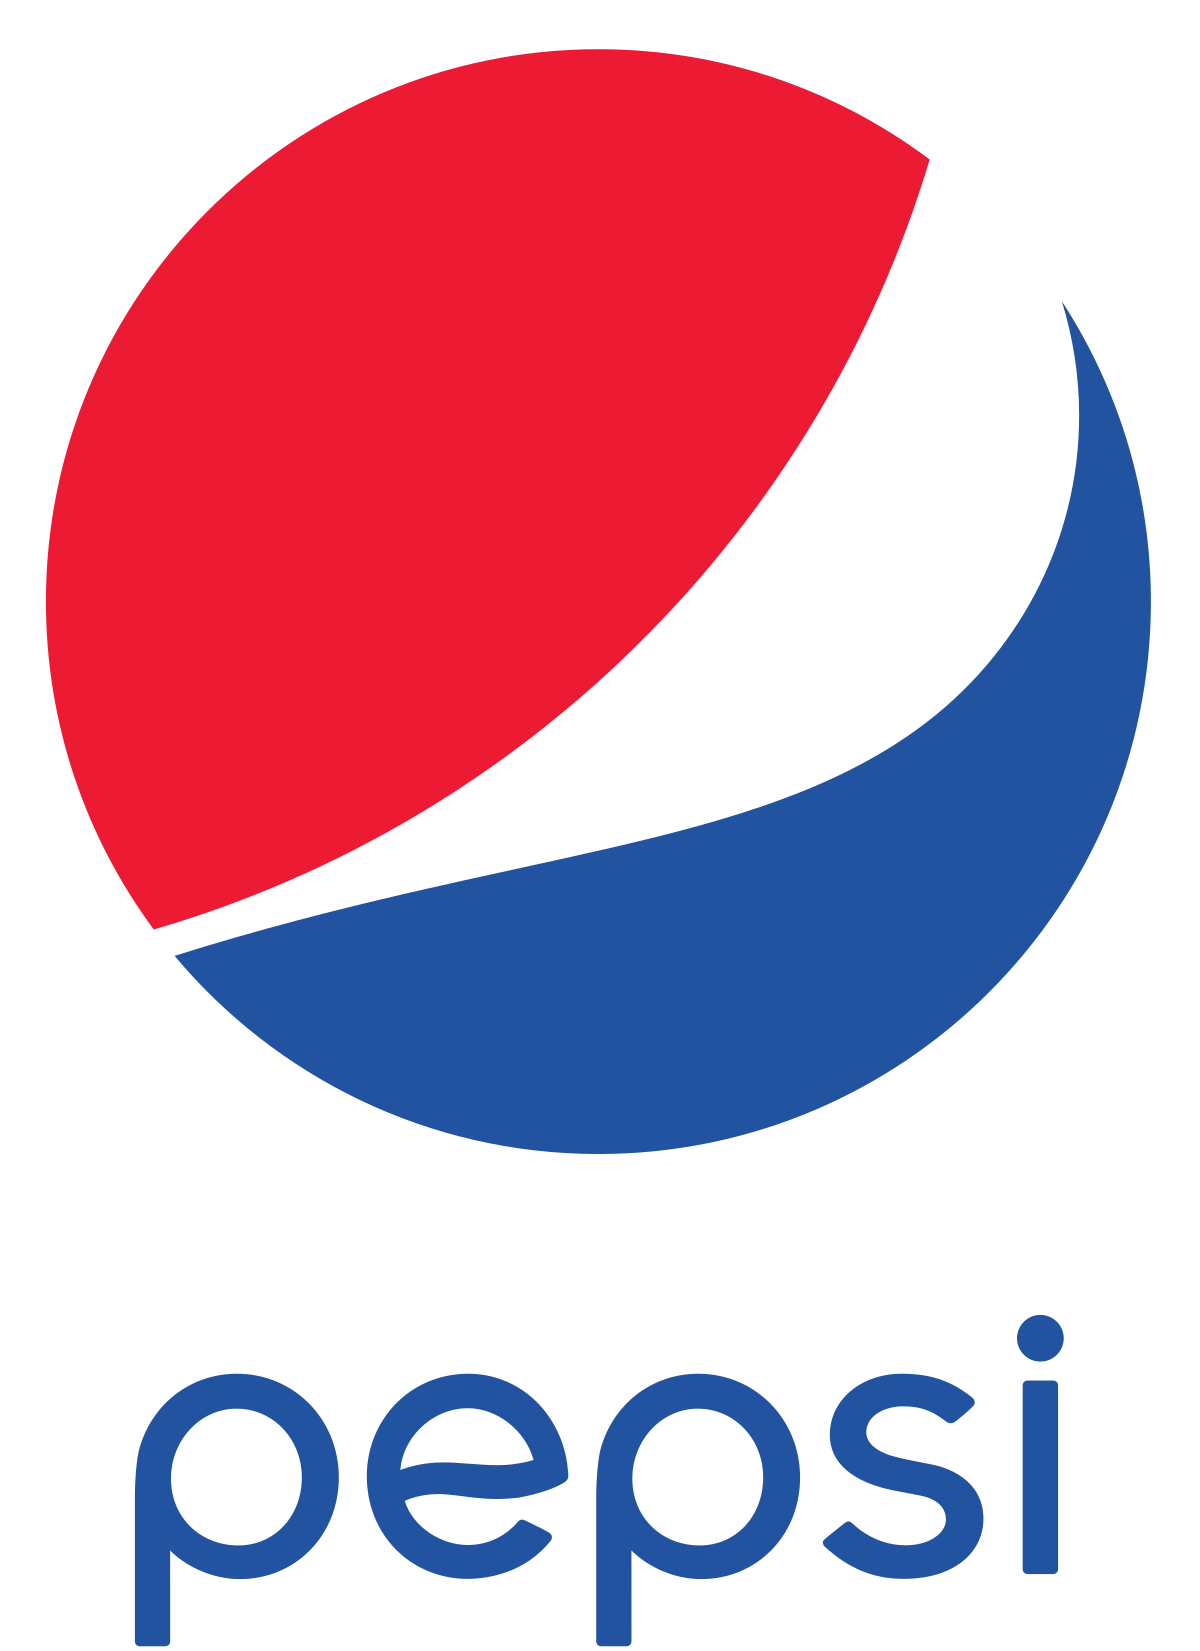 Ed Miller's 30 year career in sales and marketing includes working alongside Pepsi.